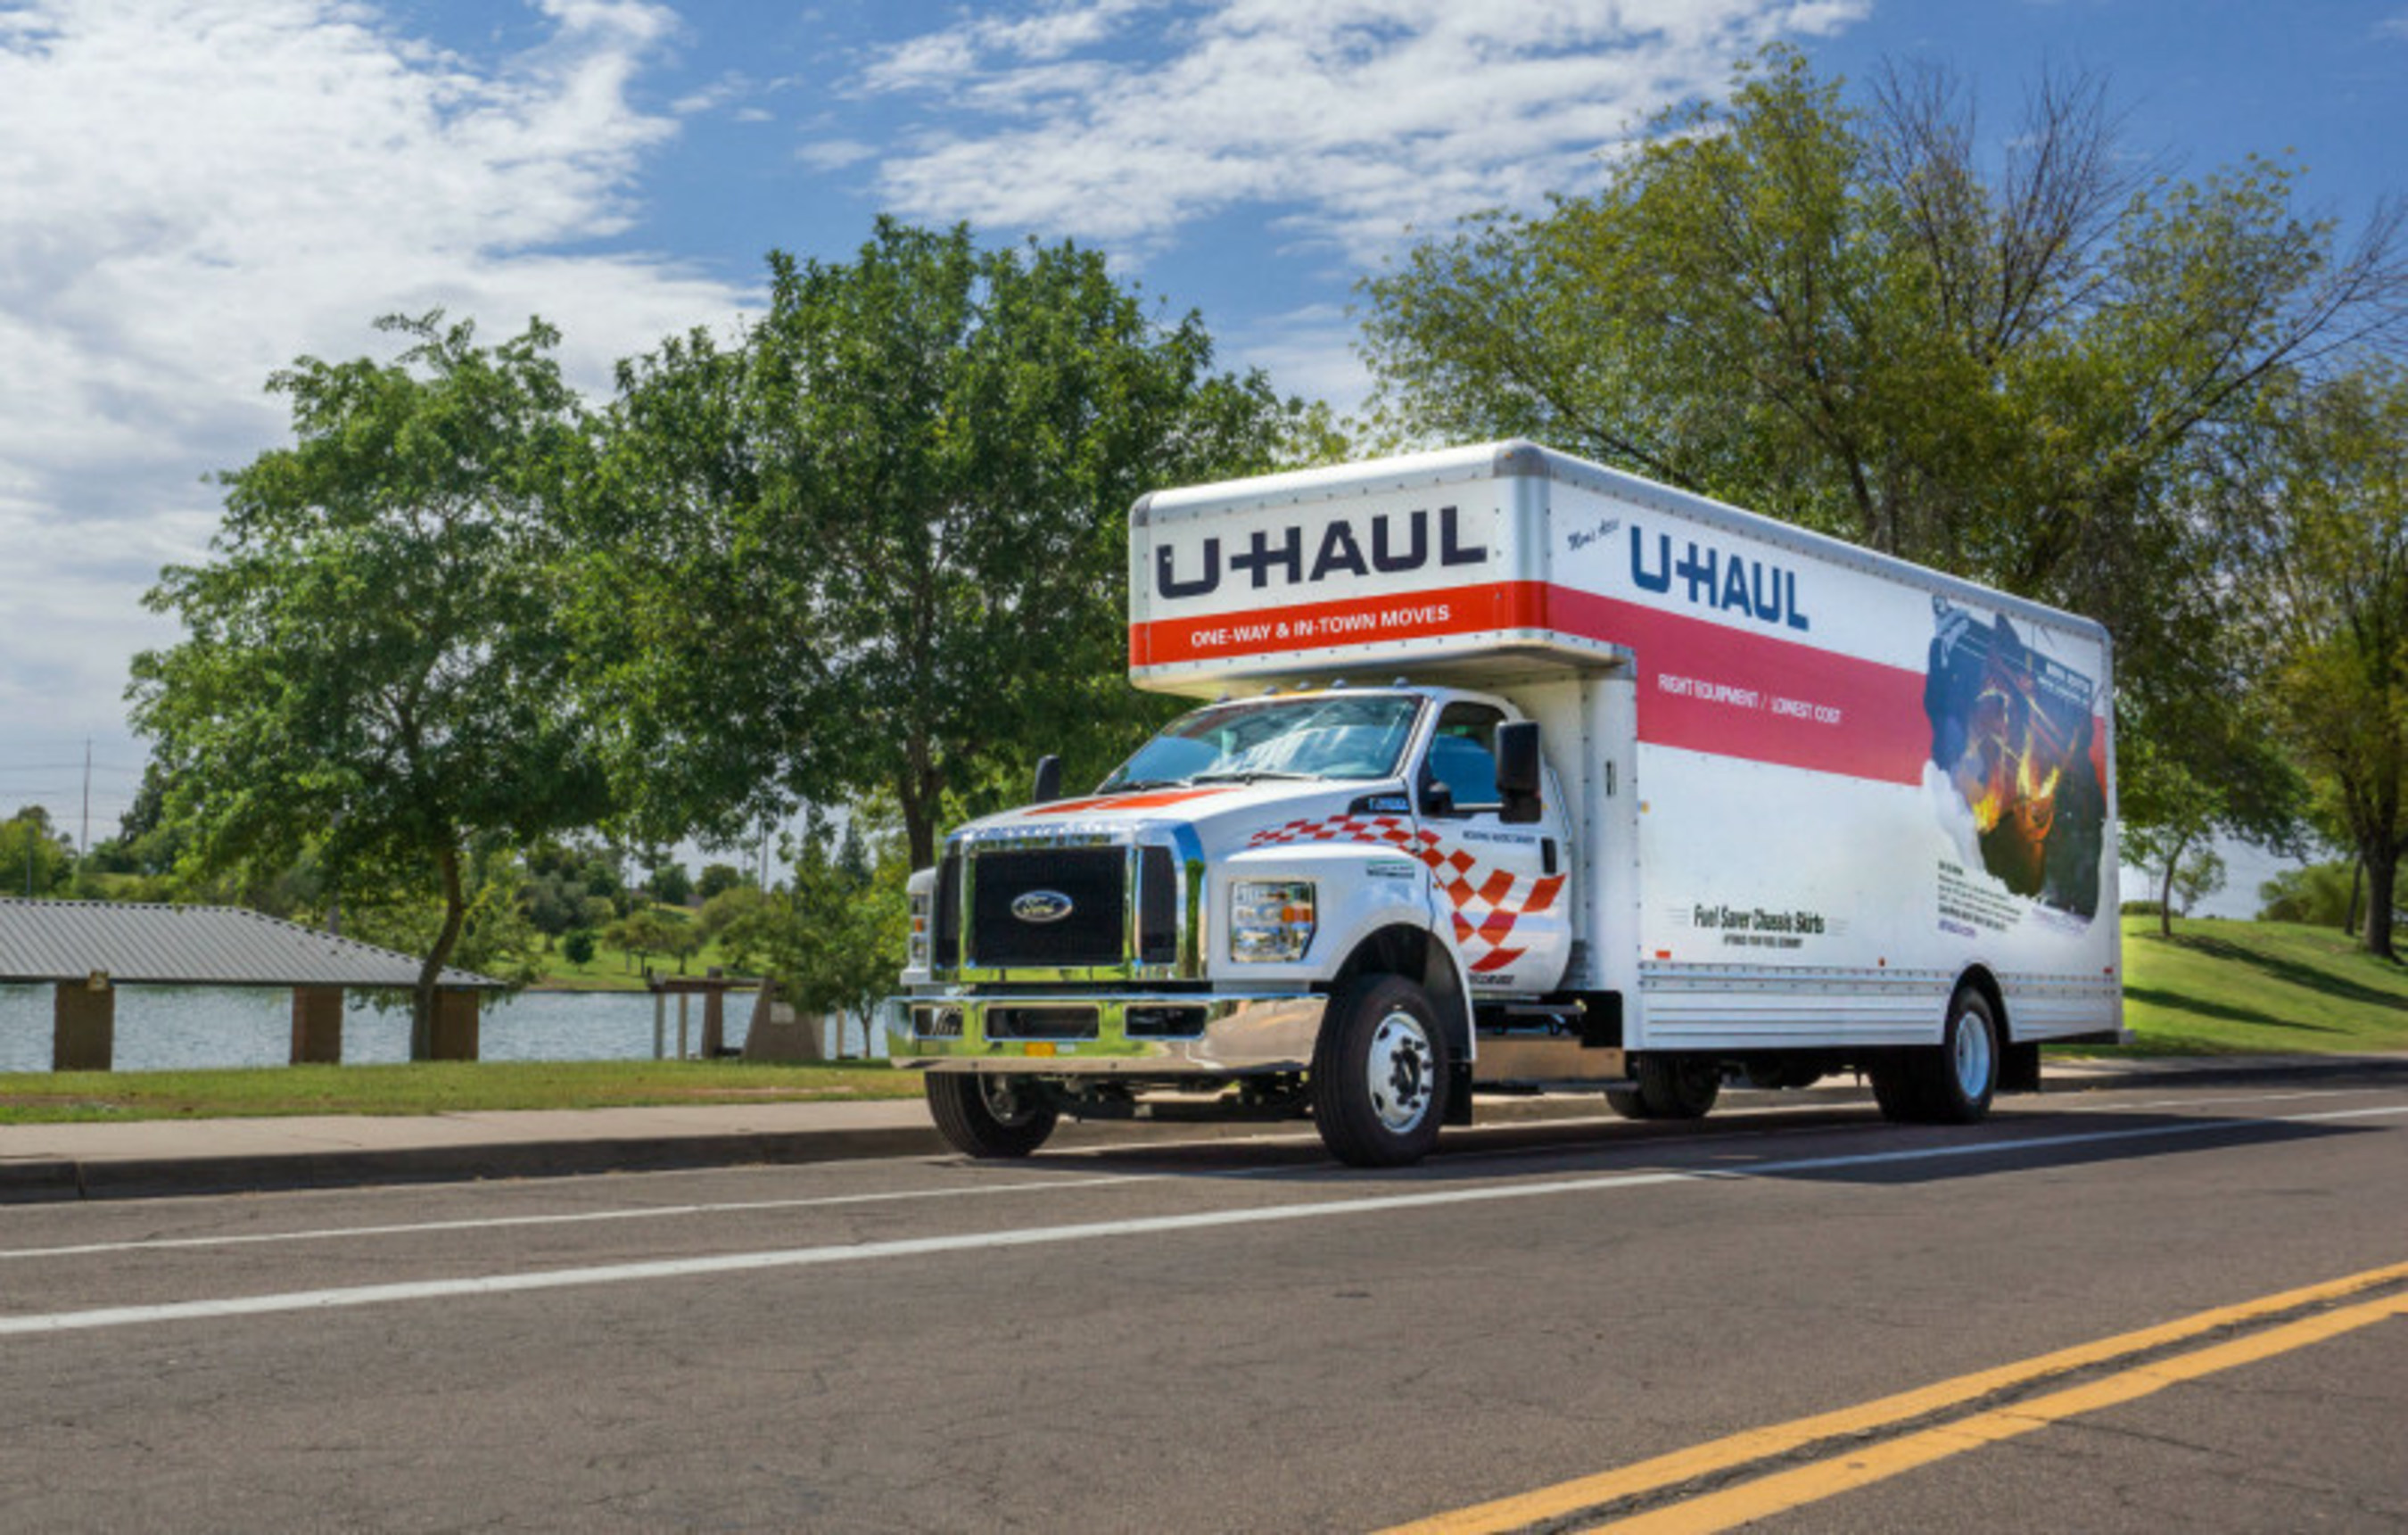 Booming college towns, traditional big-city markets and a few surprise newcomers drove their way onto the Top 10 U.S. Growth Cities of 2015. U-Haul International, Inc., the industry leader in do-it-yourself moving and self-storage, will be announcing the list via Twitter @uhaul in a countdown-style format over the next 10 weekdays, culminating with the No. 1 city on Feb. 5.